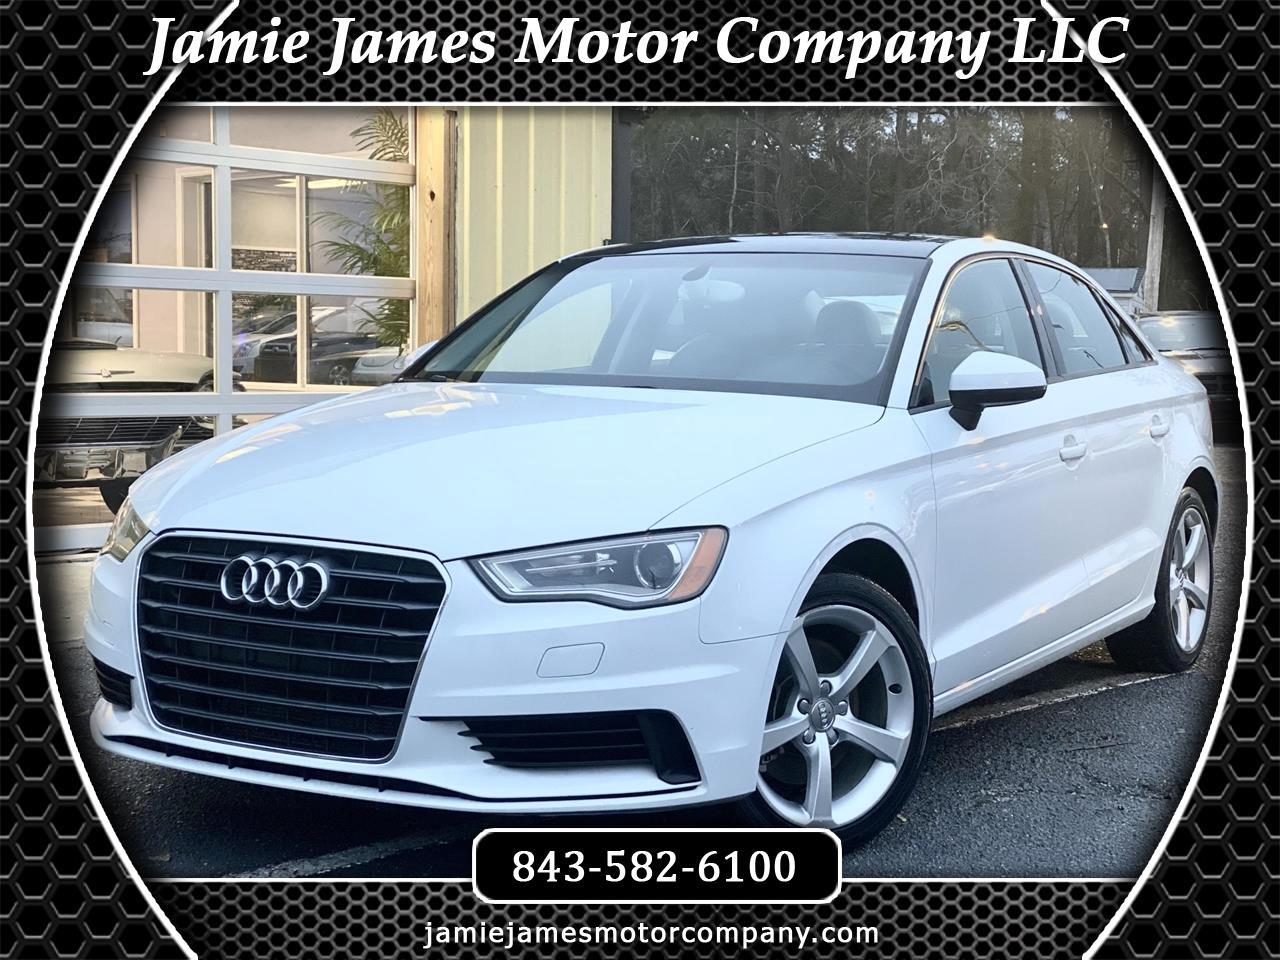 Used Cars For Sale Little River Sc 29566 Jamie James Motor Company Llc